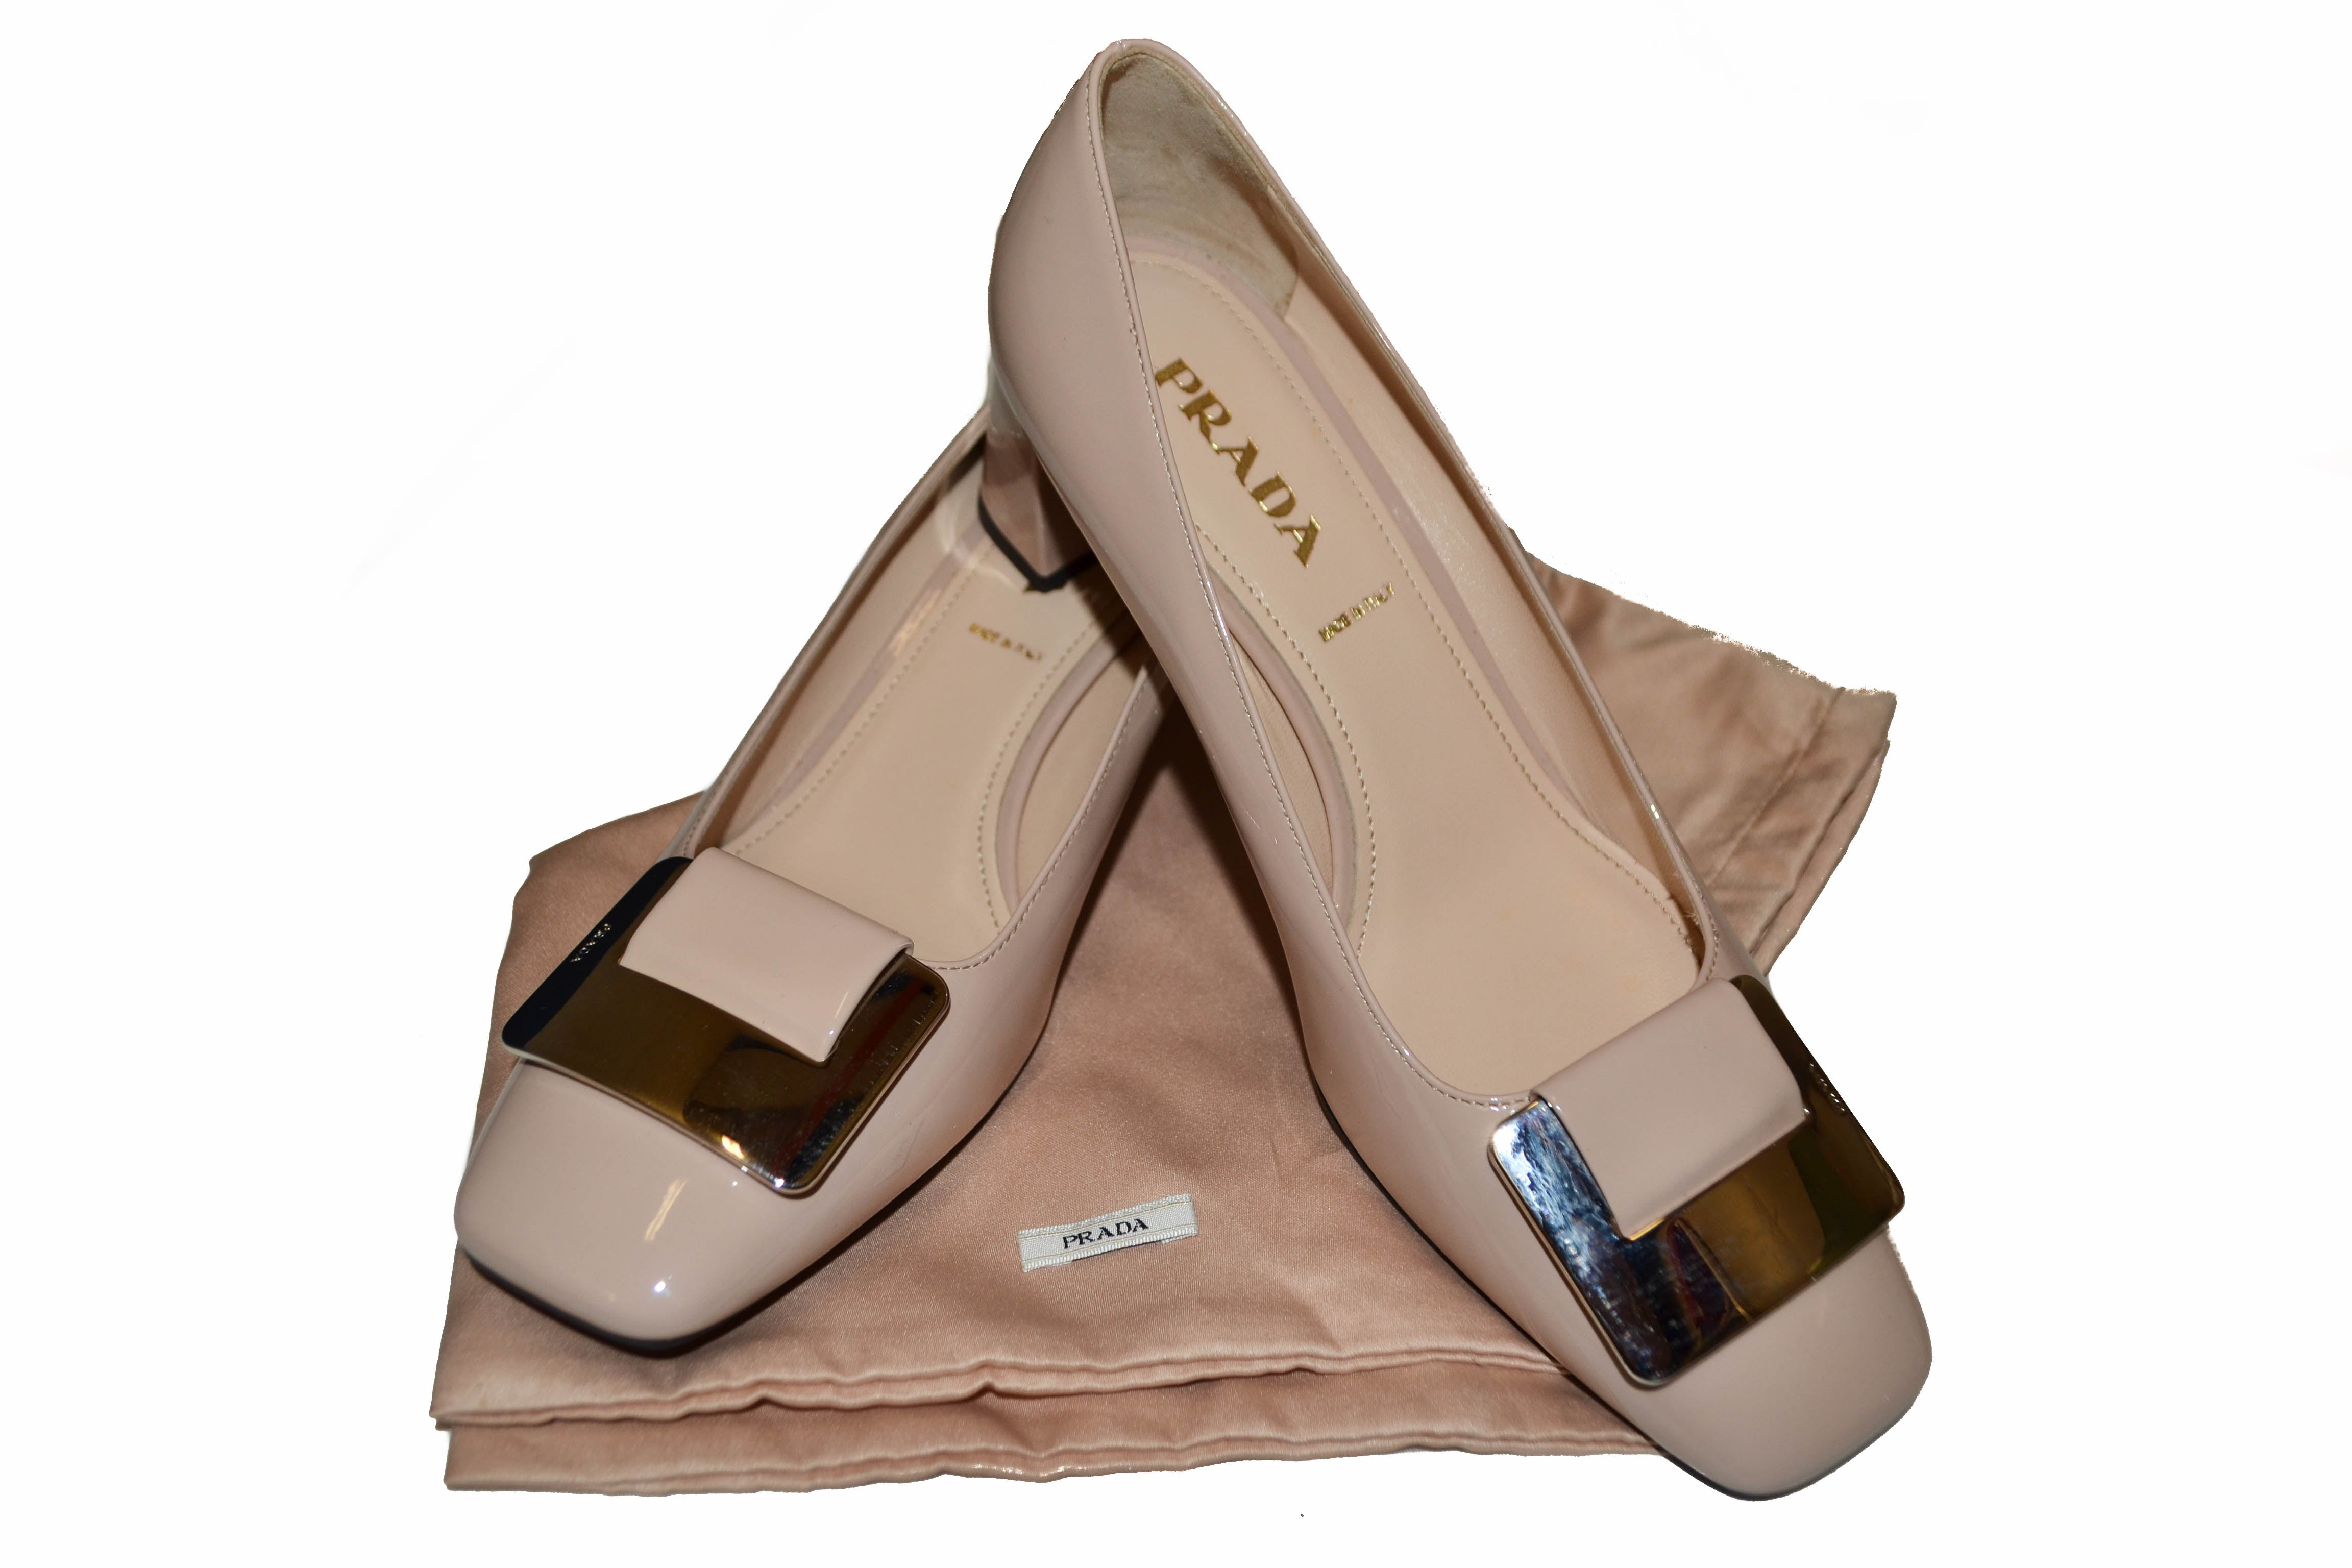 Authenti Prada Beige Patent Leather Pumps Size 37.5